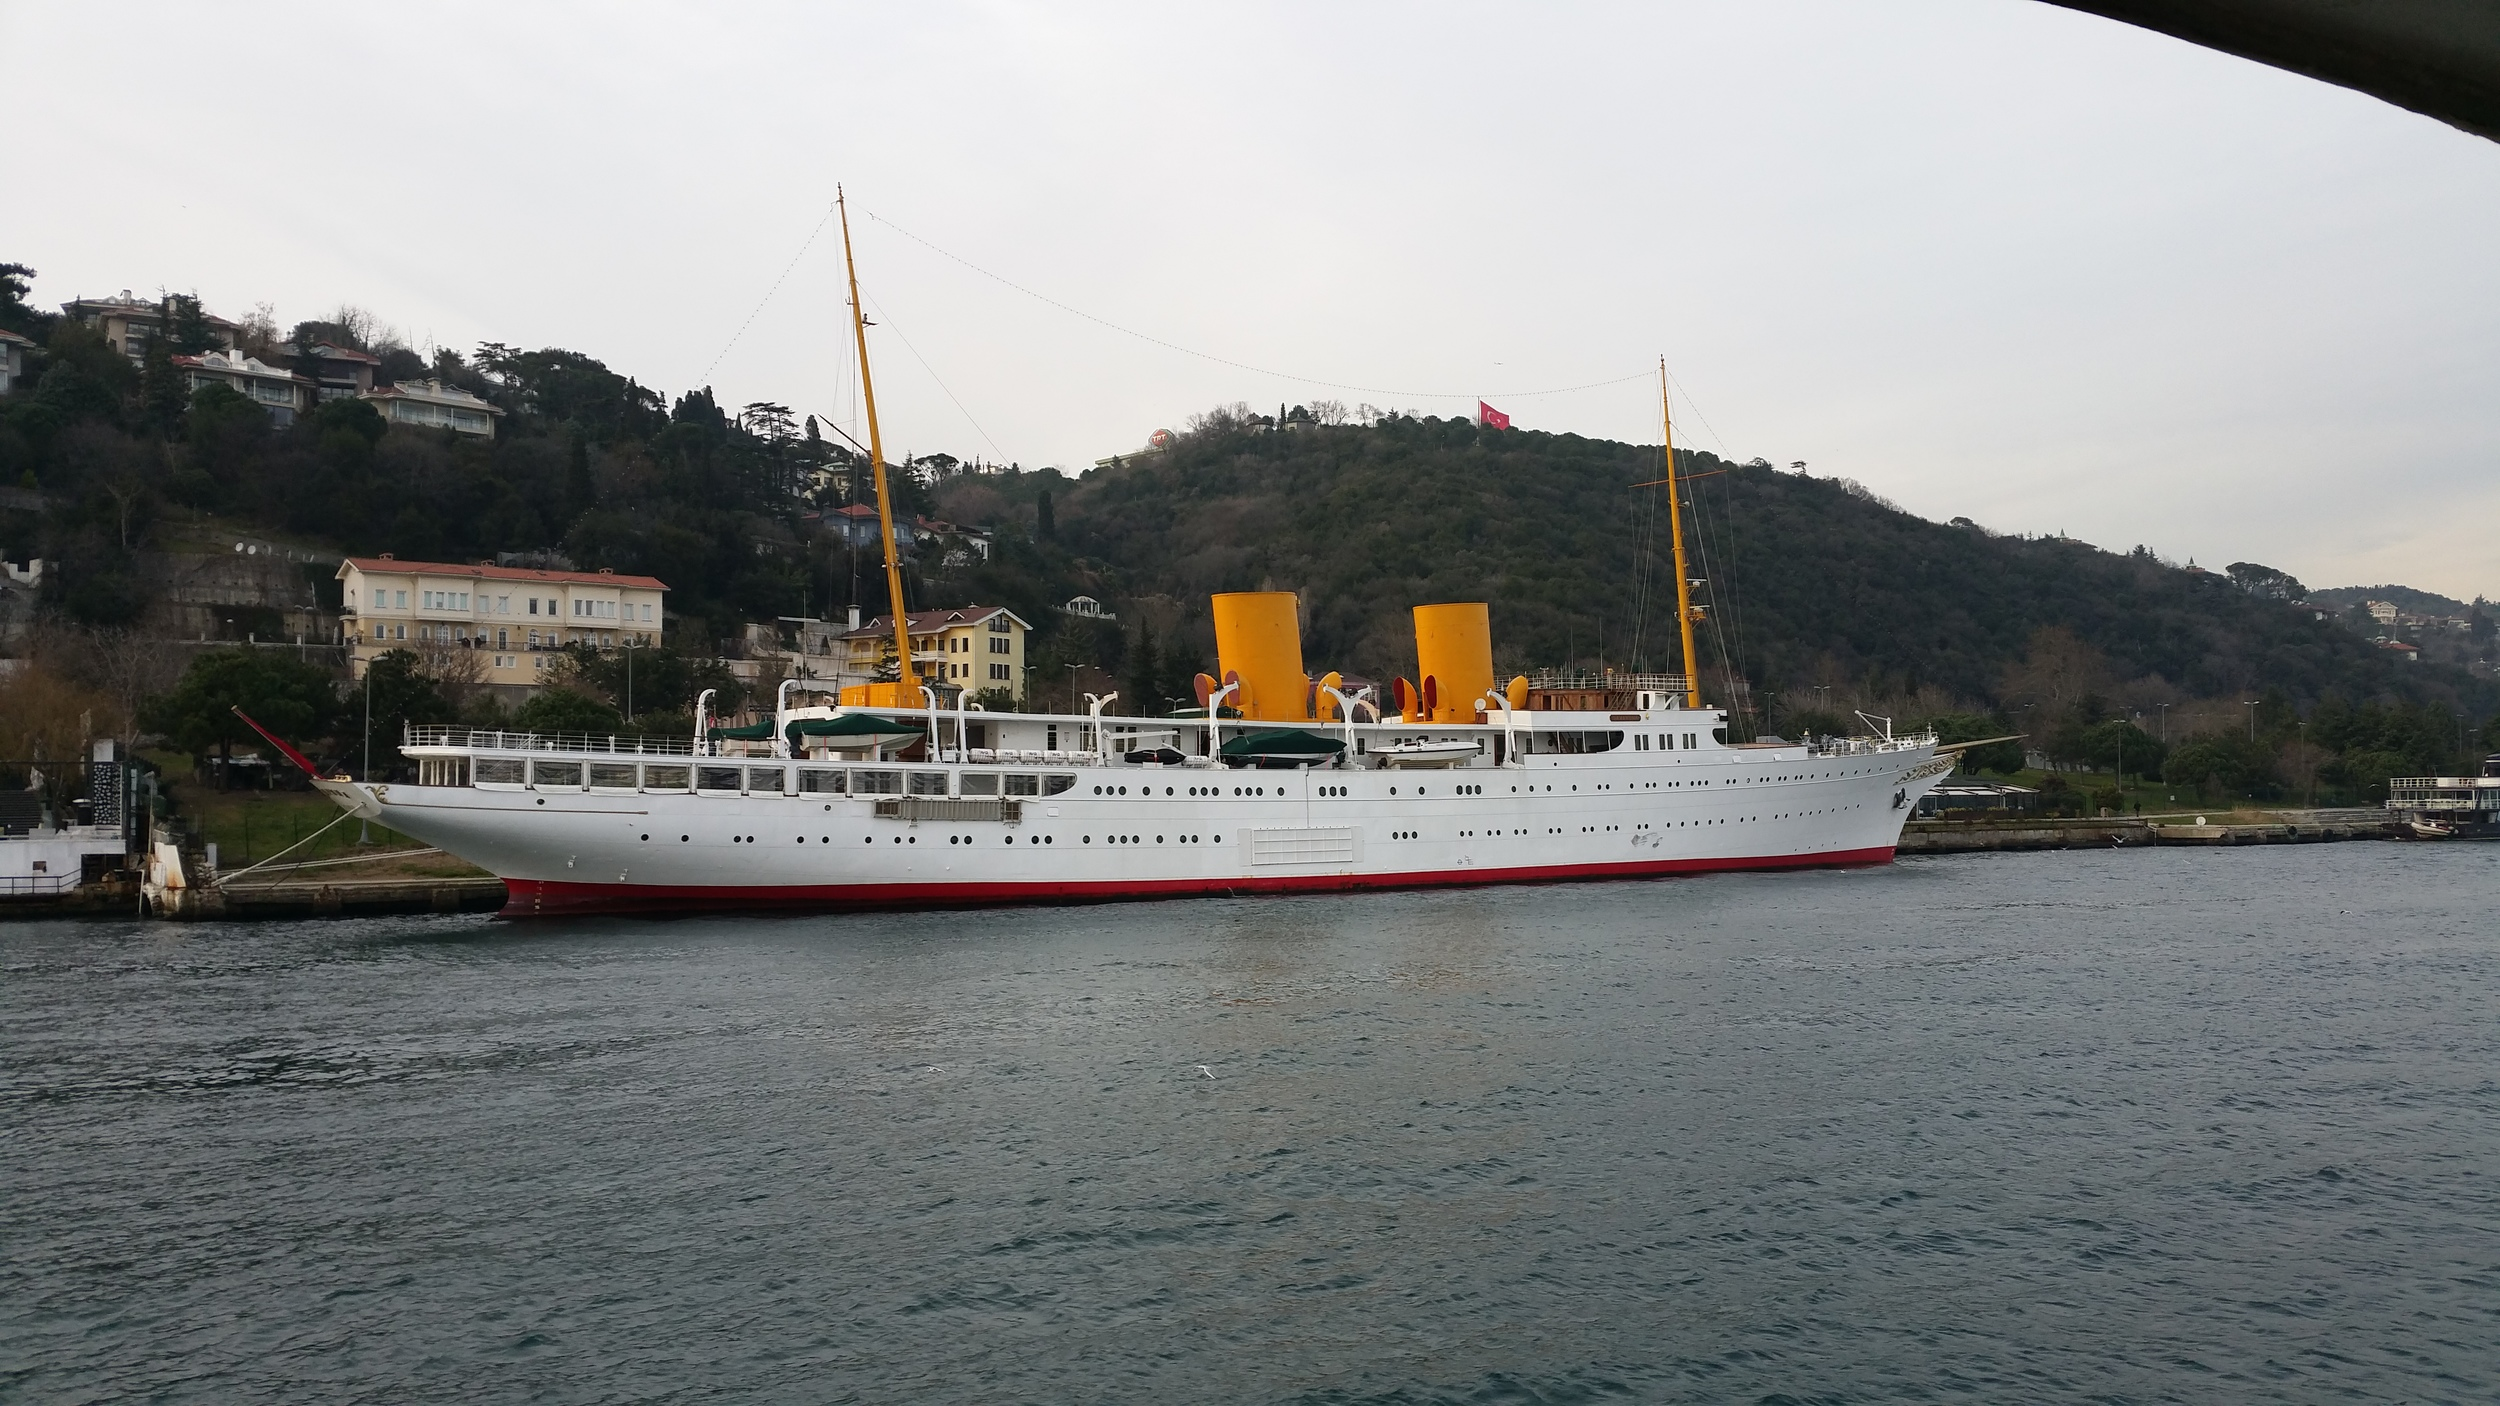 The  MV Savarona . I just thought she was pretty, but apparently she also has quite the interesting history, being built in 1931 for an American heiress and eventually being transferred to the State of Turkey, almost destroyed in a fire, and rebuilt. Now exclusivley used by the President.